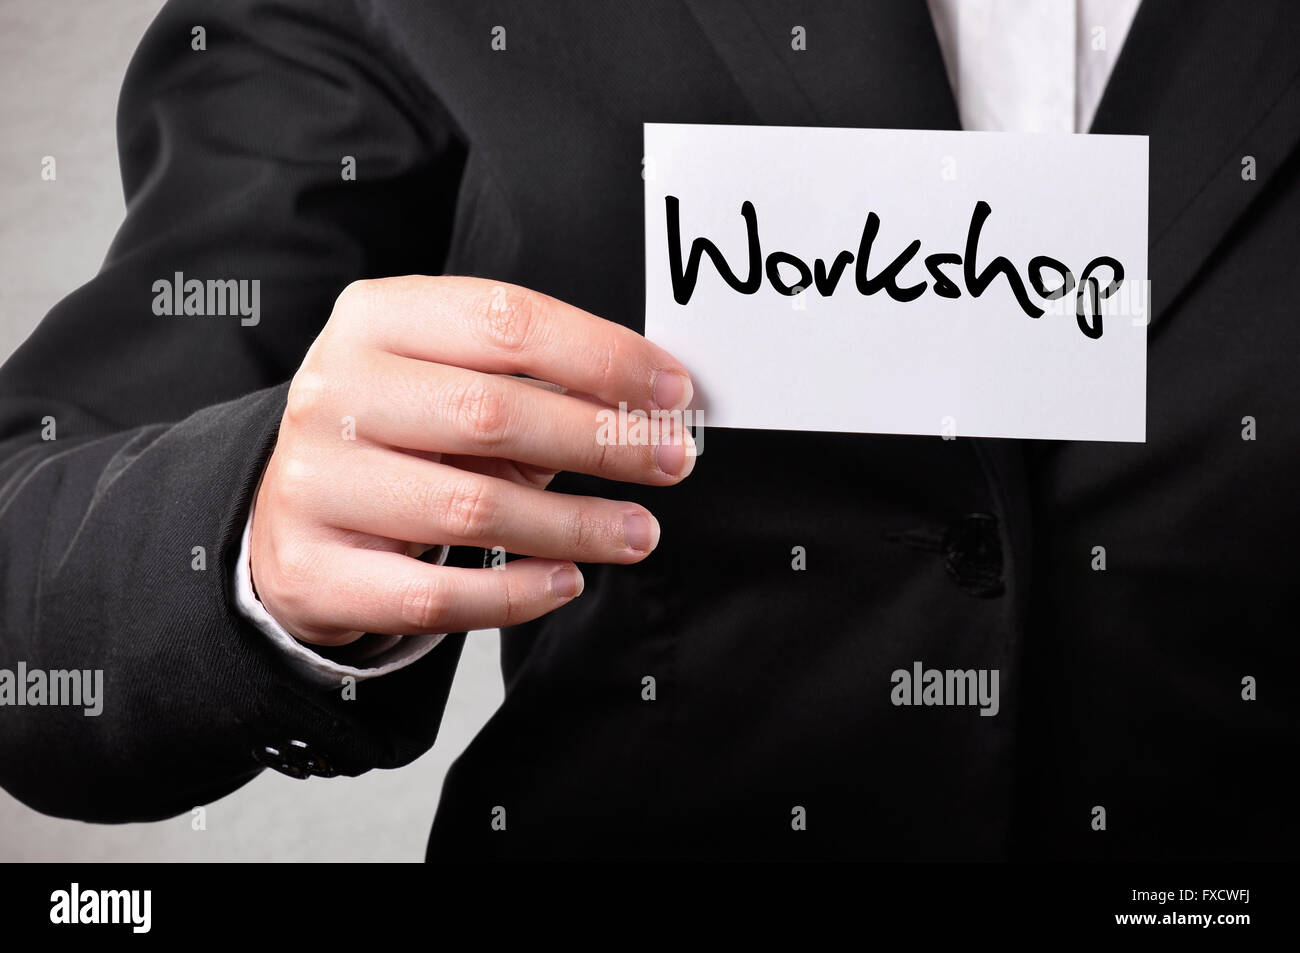 Businessperson holding a card with workshop written on it - Stock Image